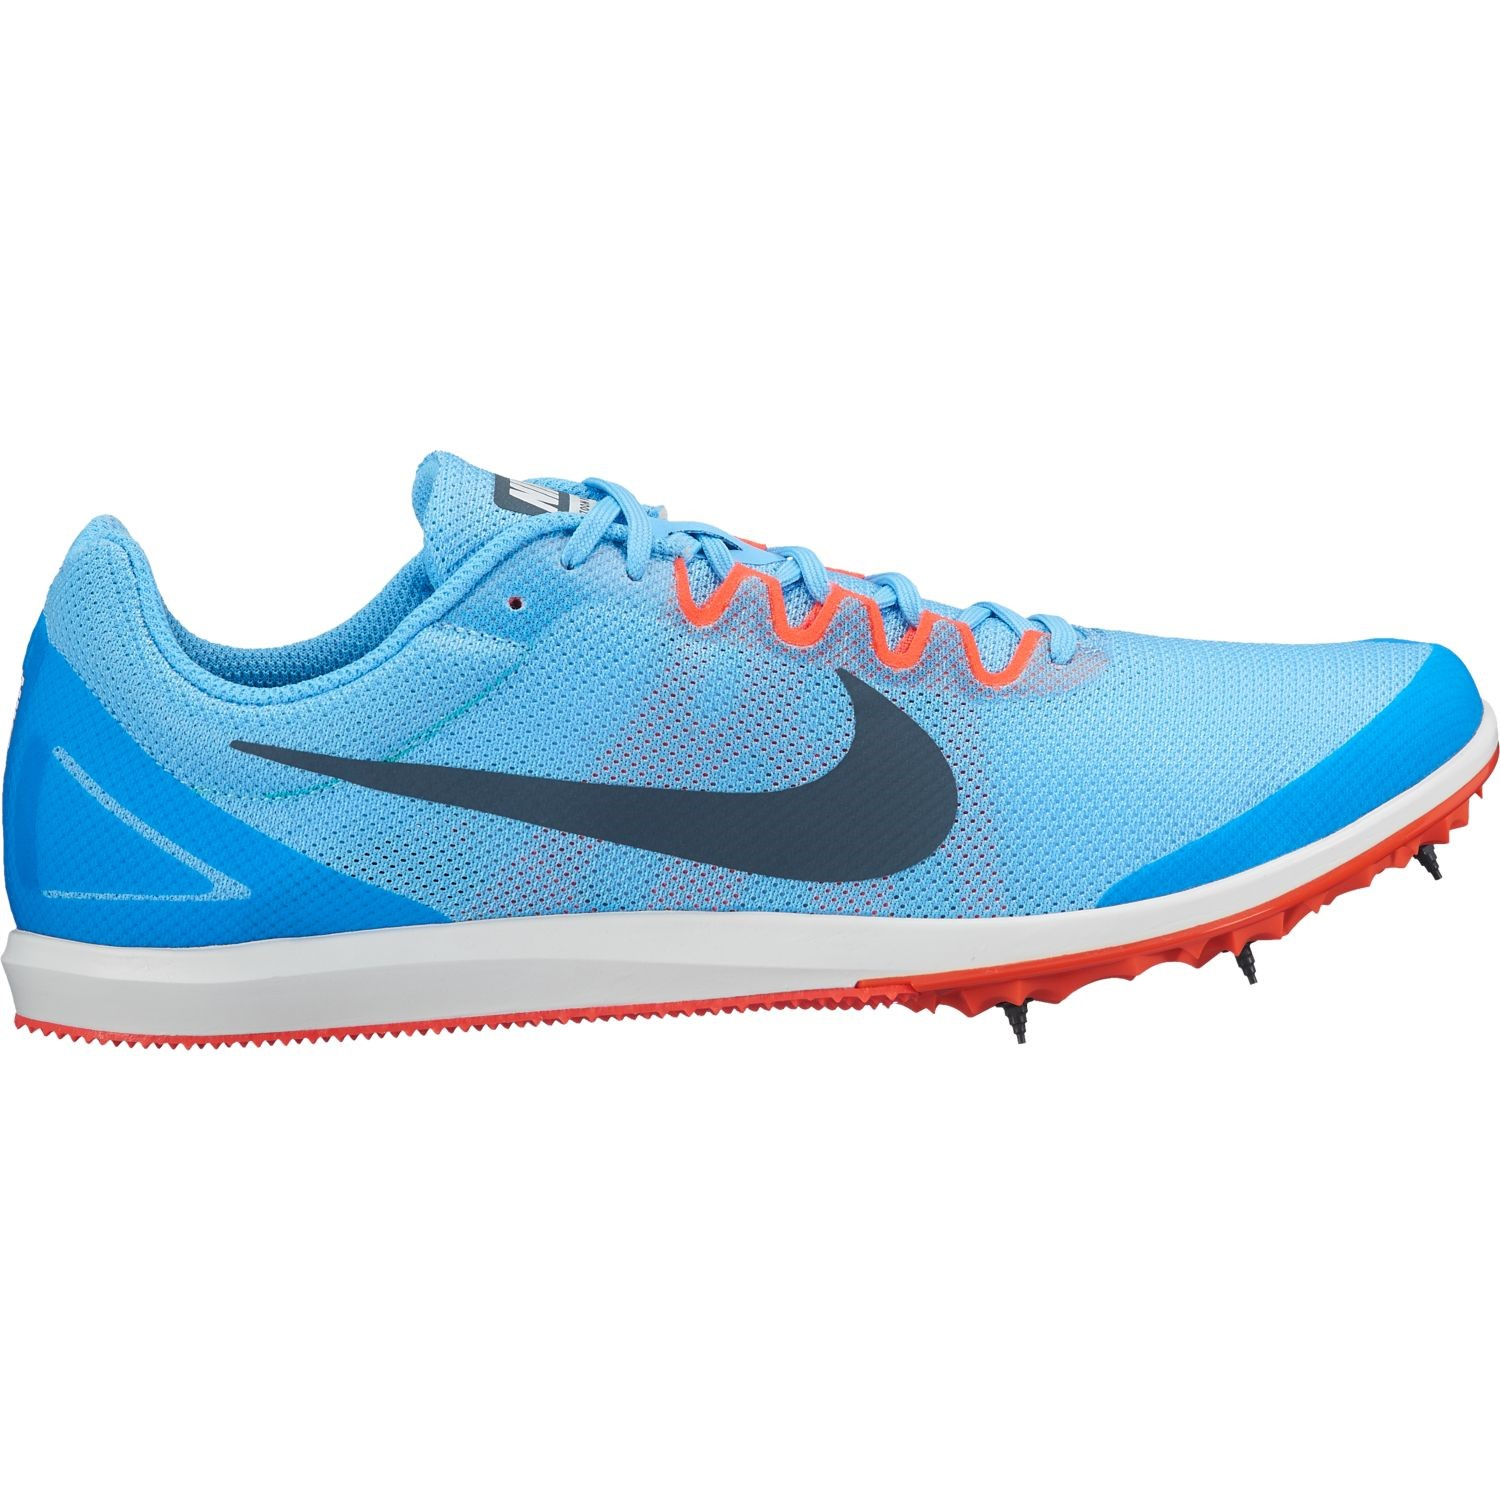 65997309024 Nike Zoom Rival D 10 - Unisex Track Running Spikes - Football Blue Blue Fox